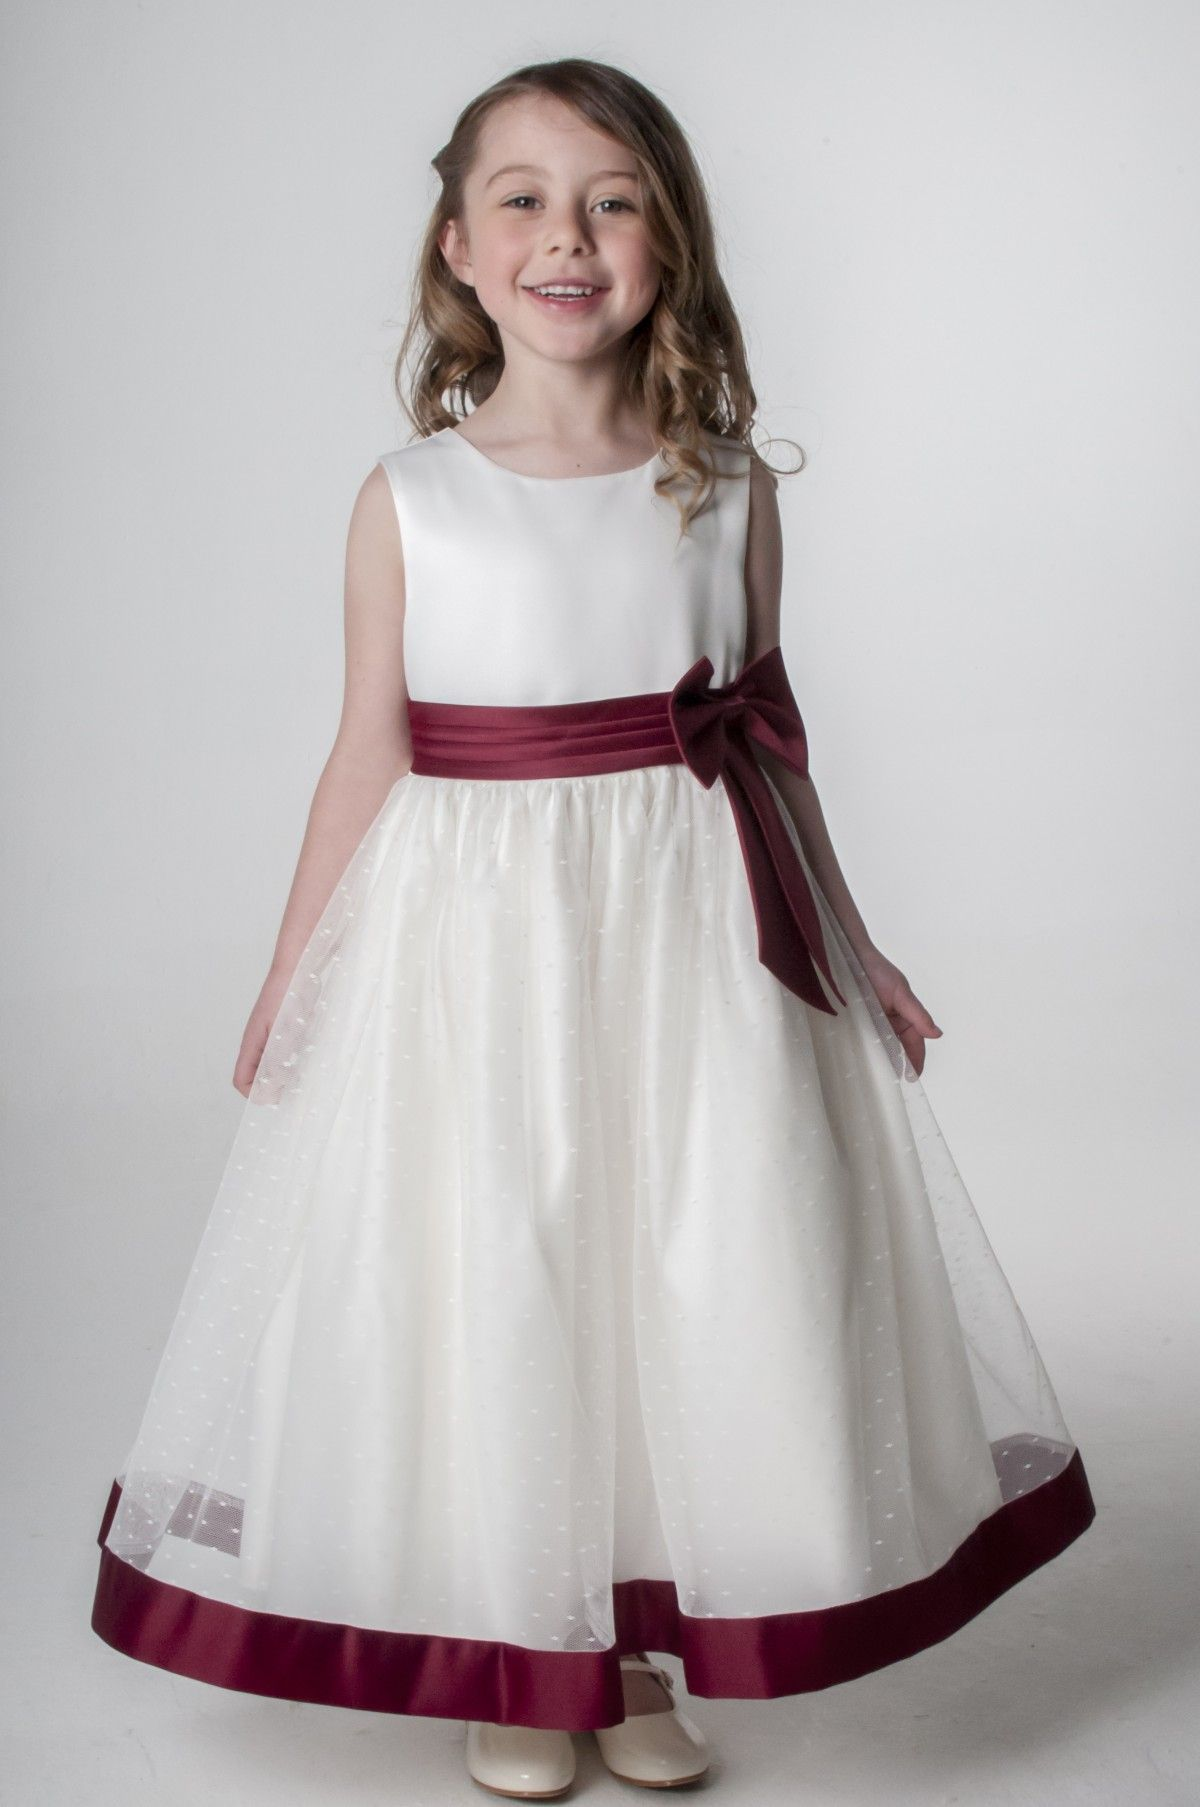 fde5d64f41e Burgundy  Wine Flower Girl Bridesmaid Sash Dress. available in other  colours